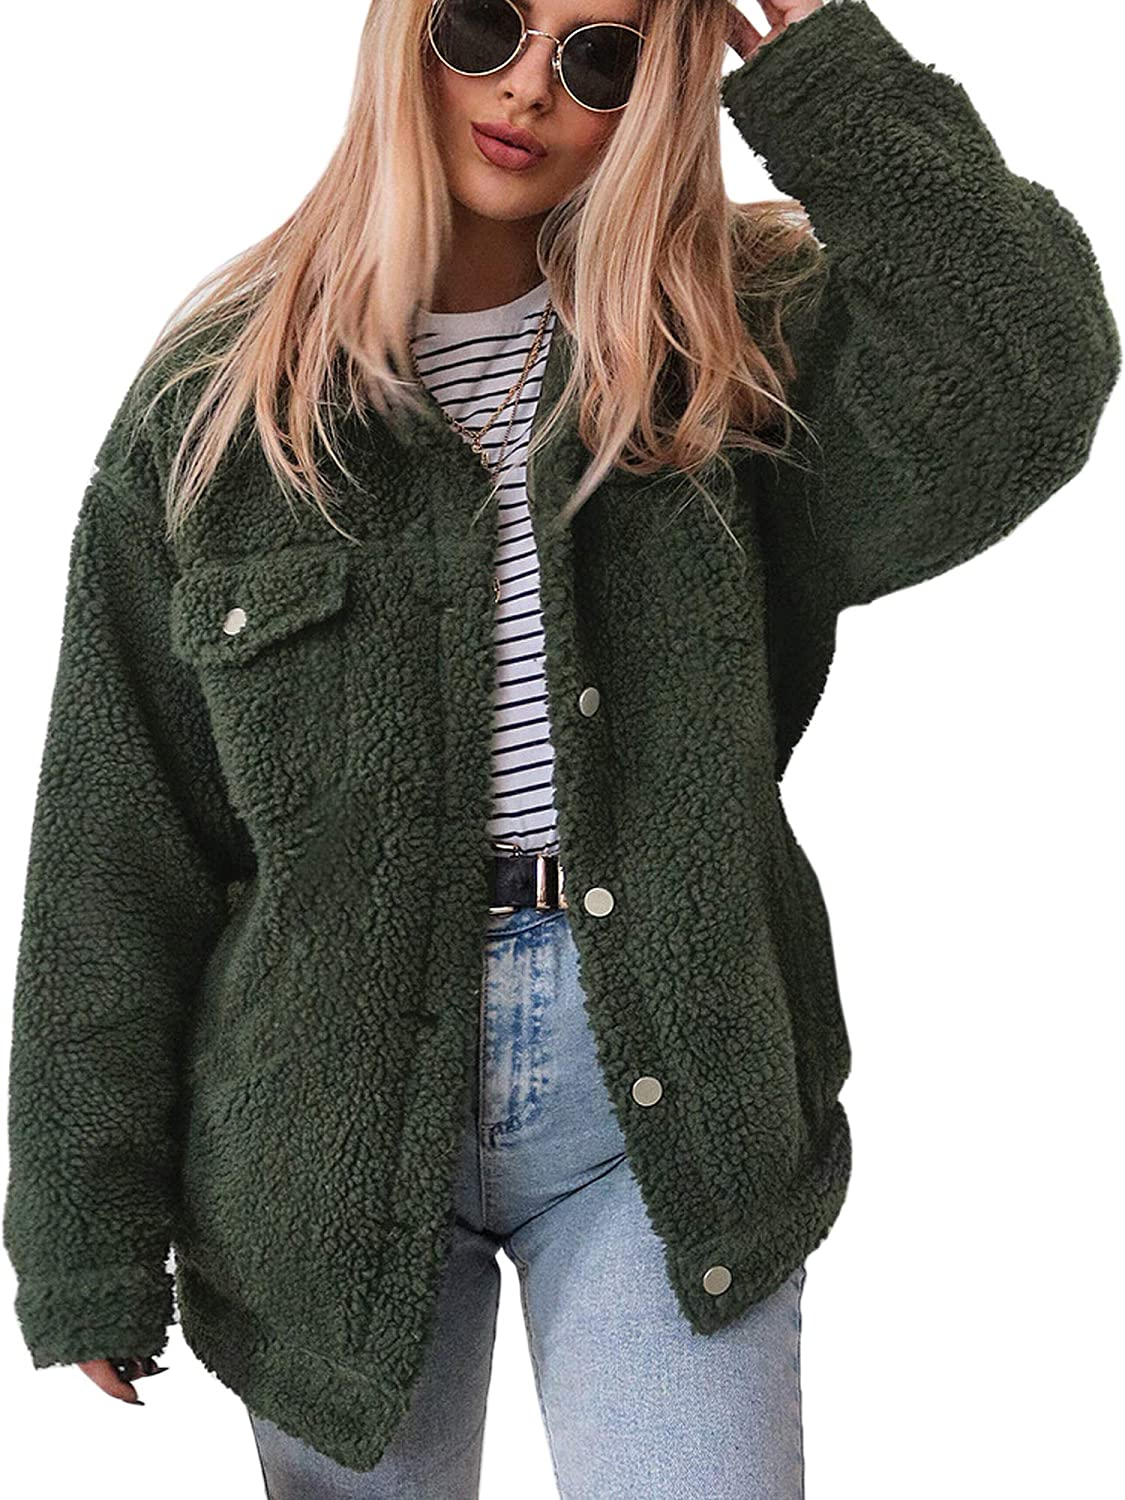 ECOWISH Women's Coat Casual Lapel Fleece Fuzzy Faux Shearling Zipper Warm Winter Oversized Outwear Jackets EH818